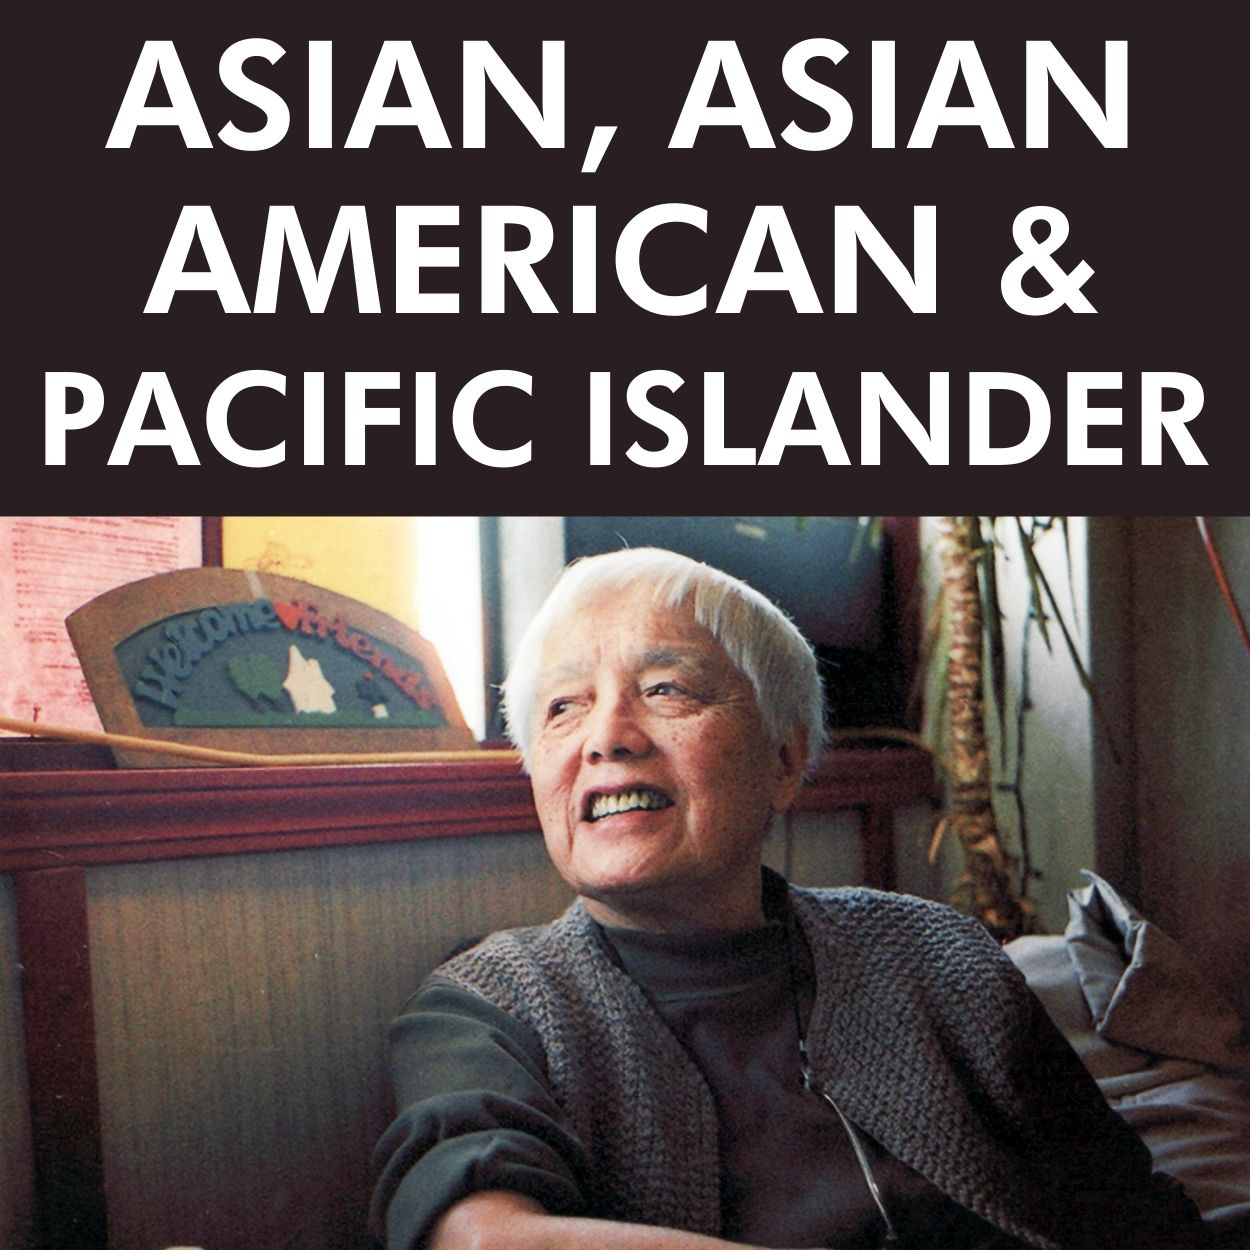 ASIAN & ASIAN AMERICAN VOICES